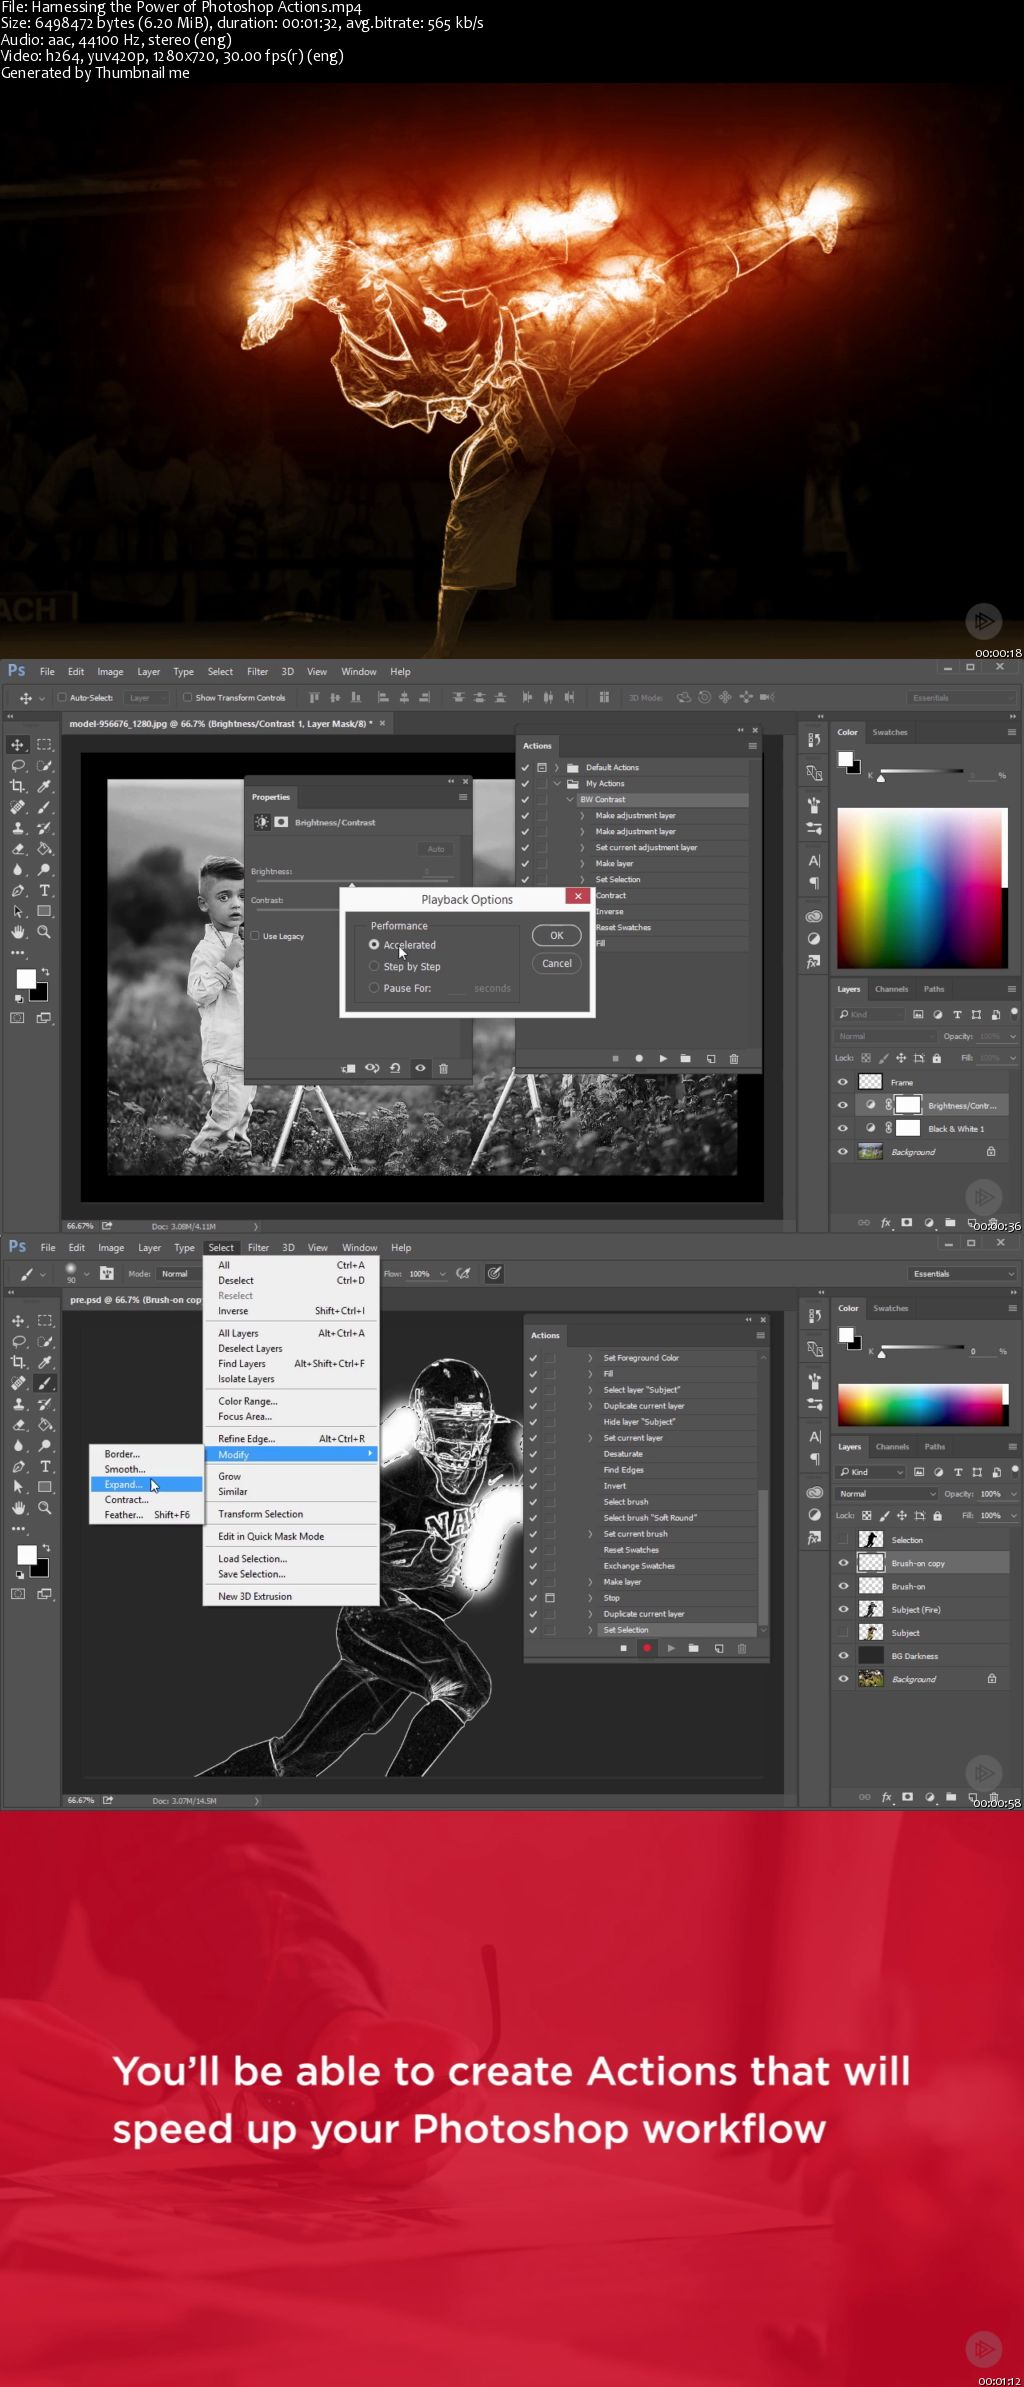 Harnessing the Power of Photoshop Actions